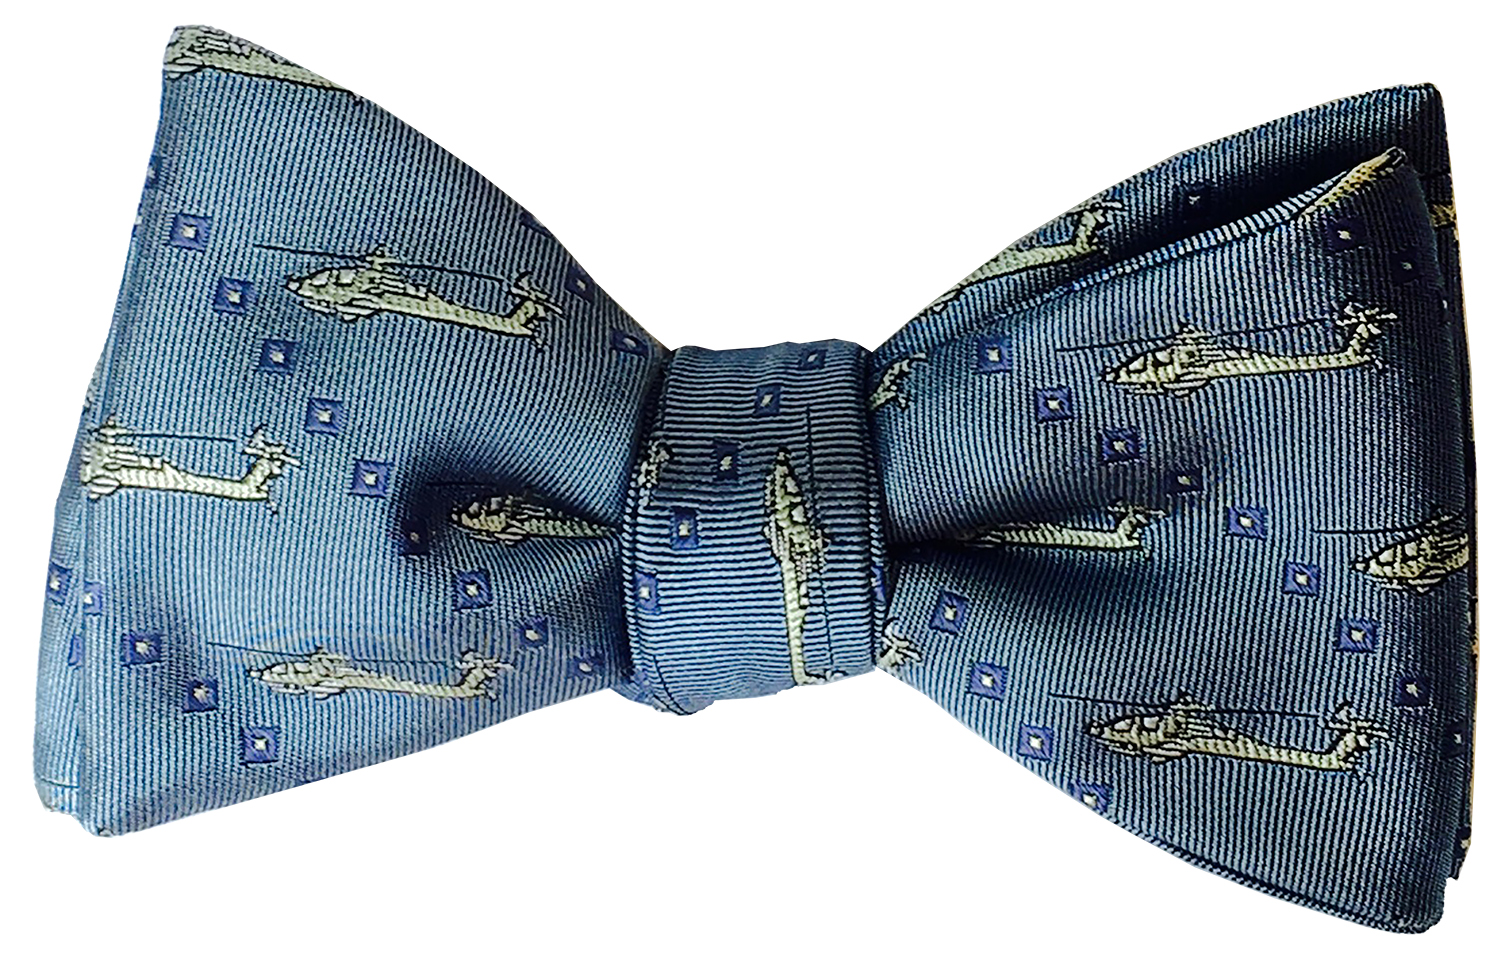 doppeldecker design designer aviation aircraft silk bow tie bowtie ah64